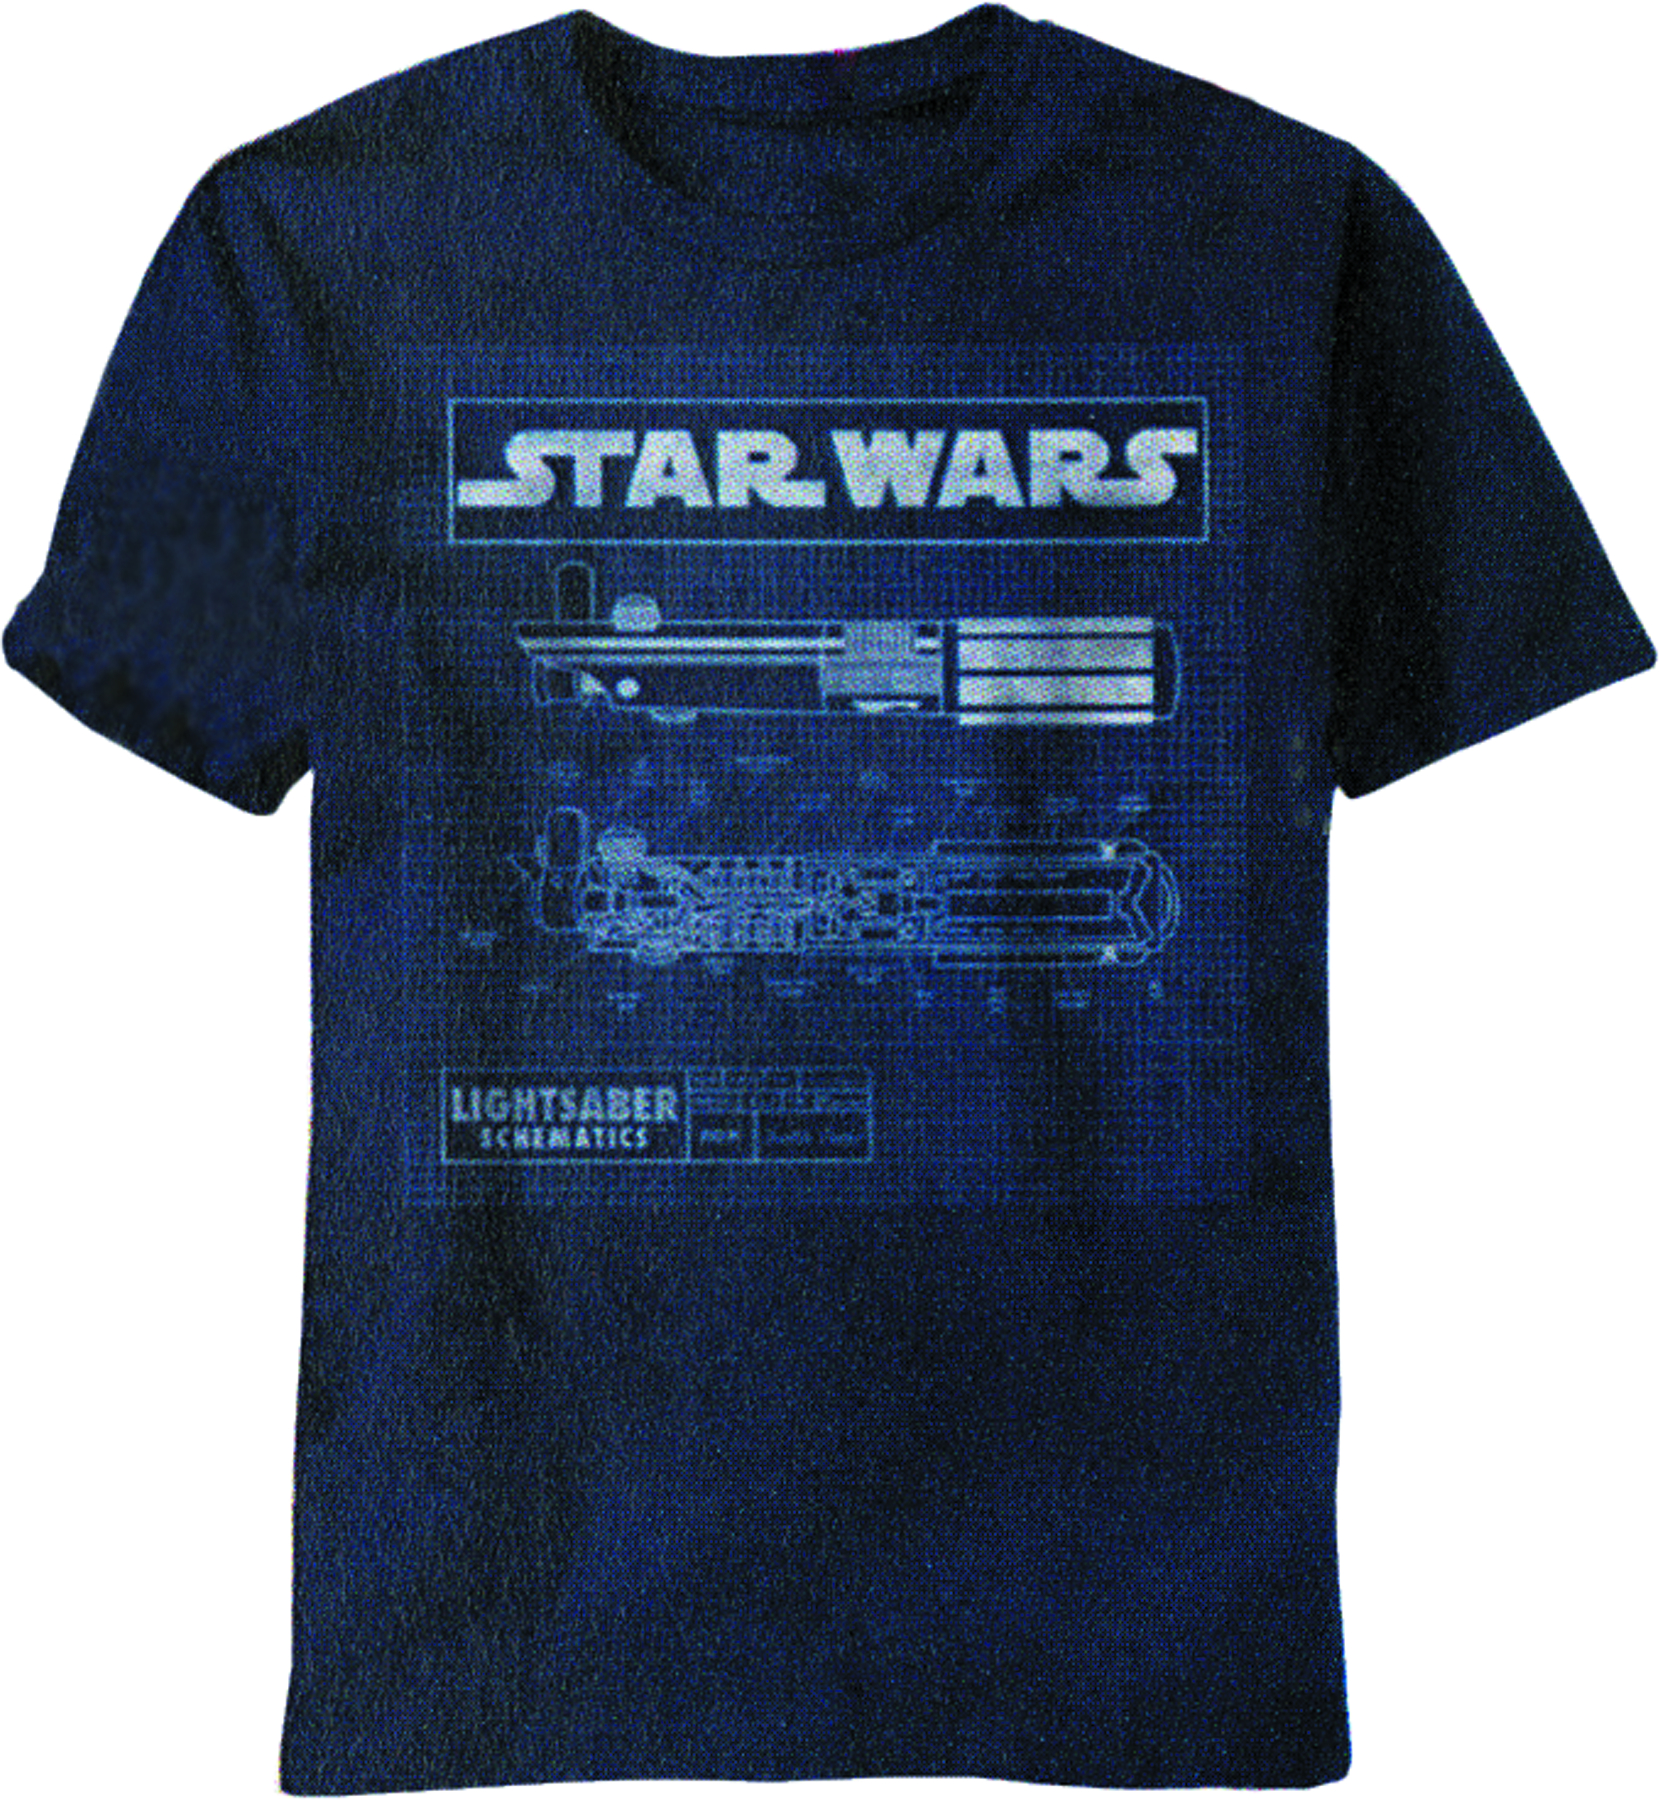 STAR WARS SABER DIAGRAM NAVY T/S XXL